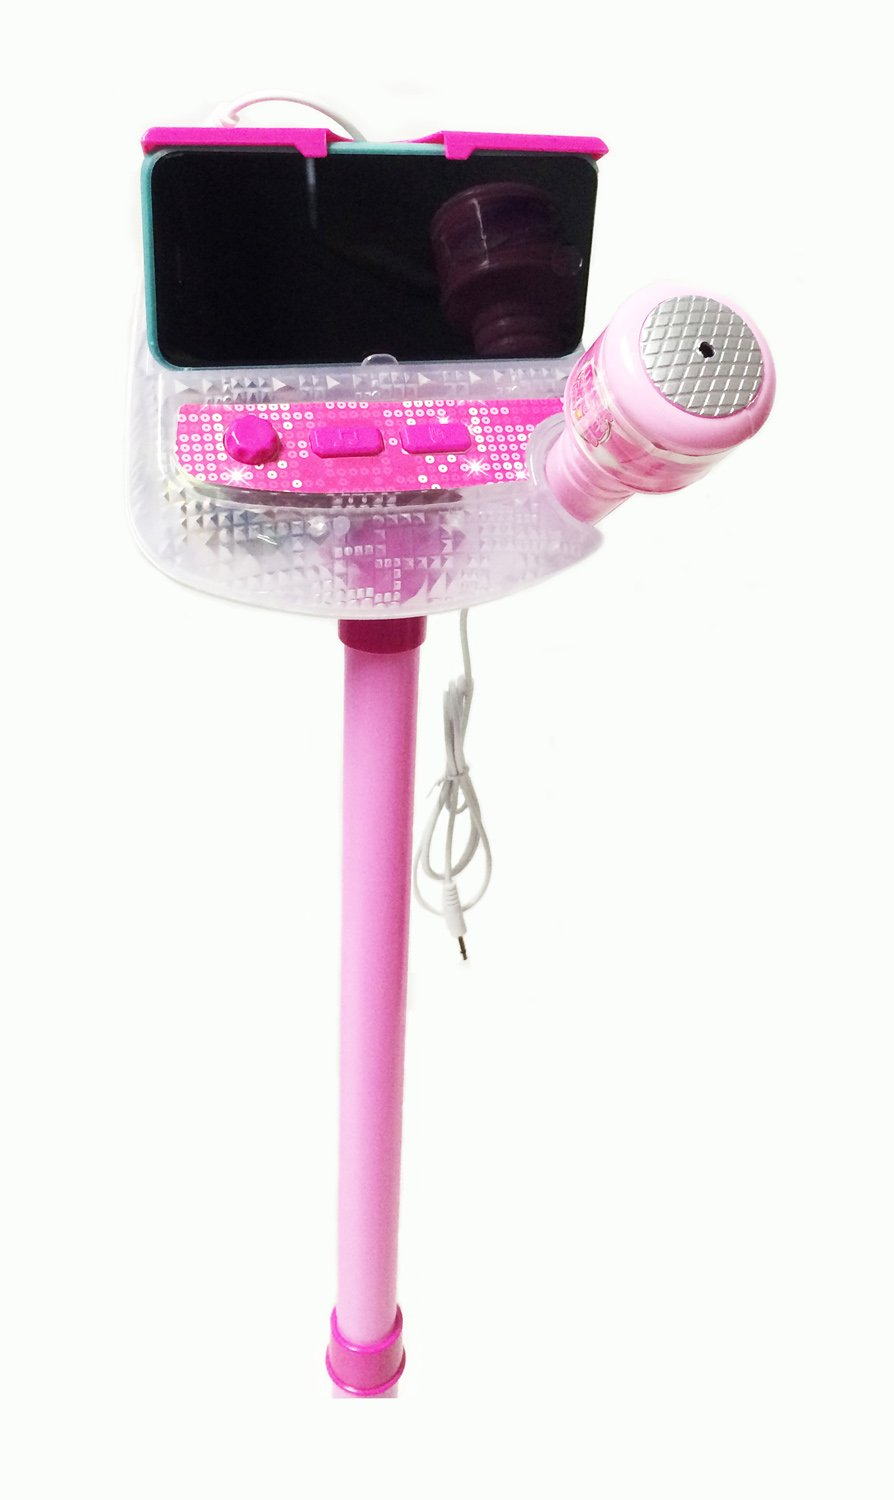 Kids Karaoke Sing Along Stage Microphone - Flashing Lights with Auxiliary Cable to Connect to Your Mp3 & Smart Devices - Adjustable Mic Stand by MTT (Image #3)